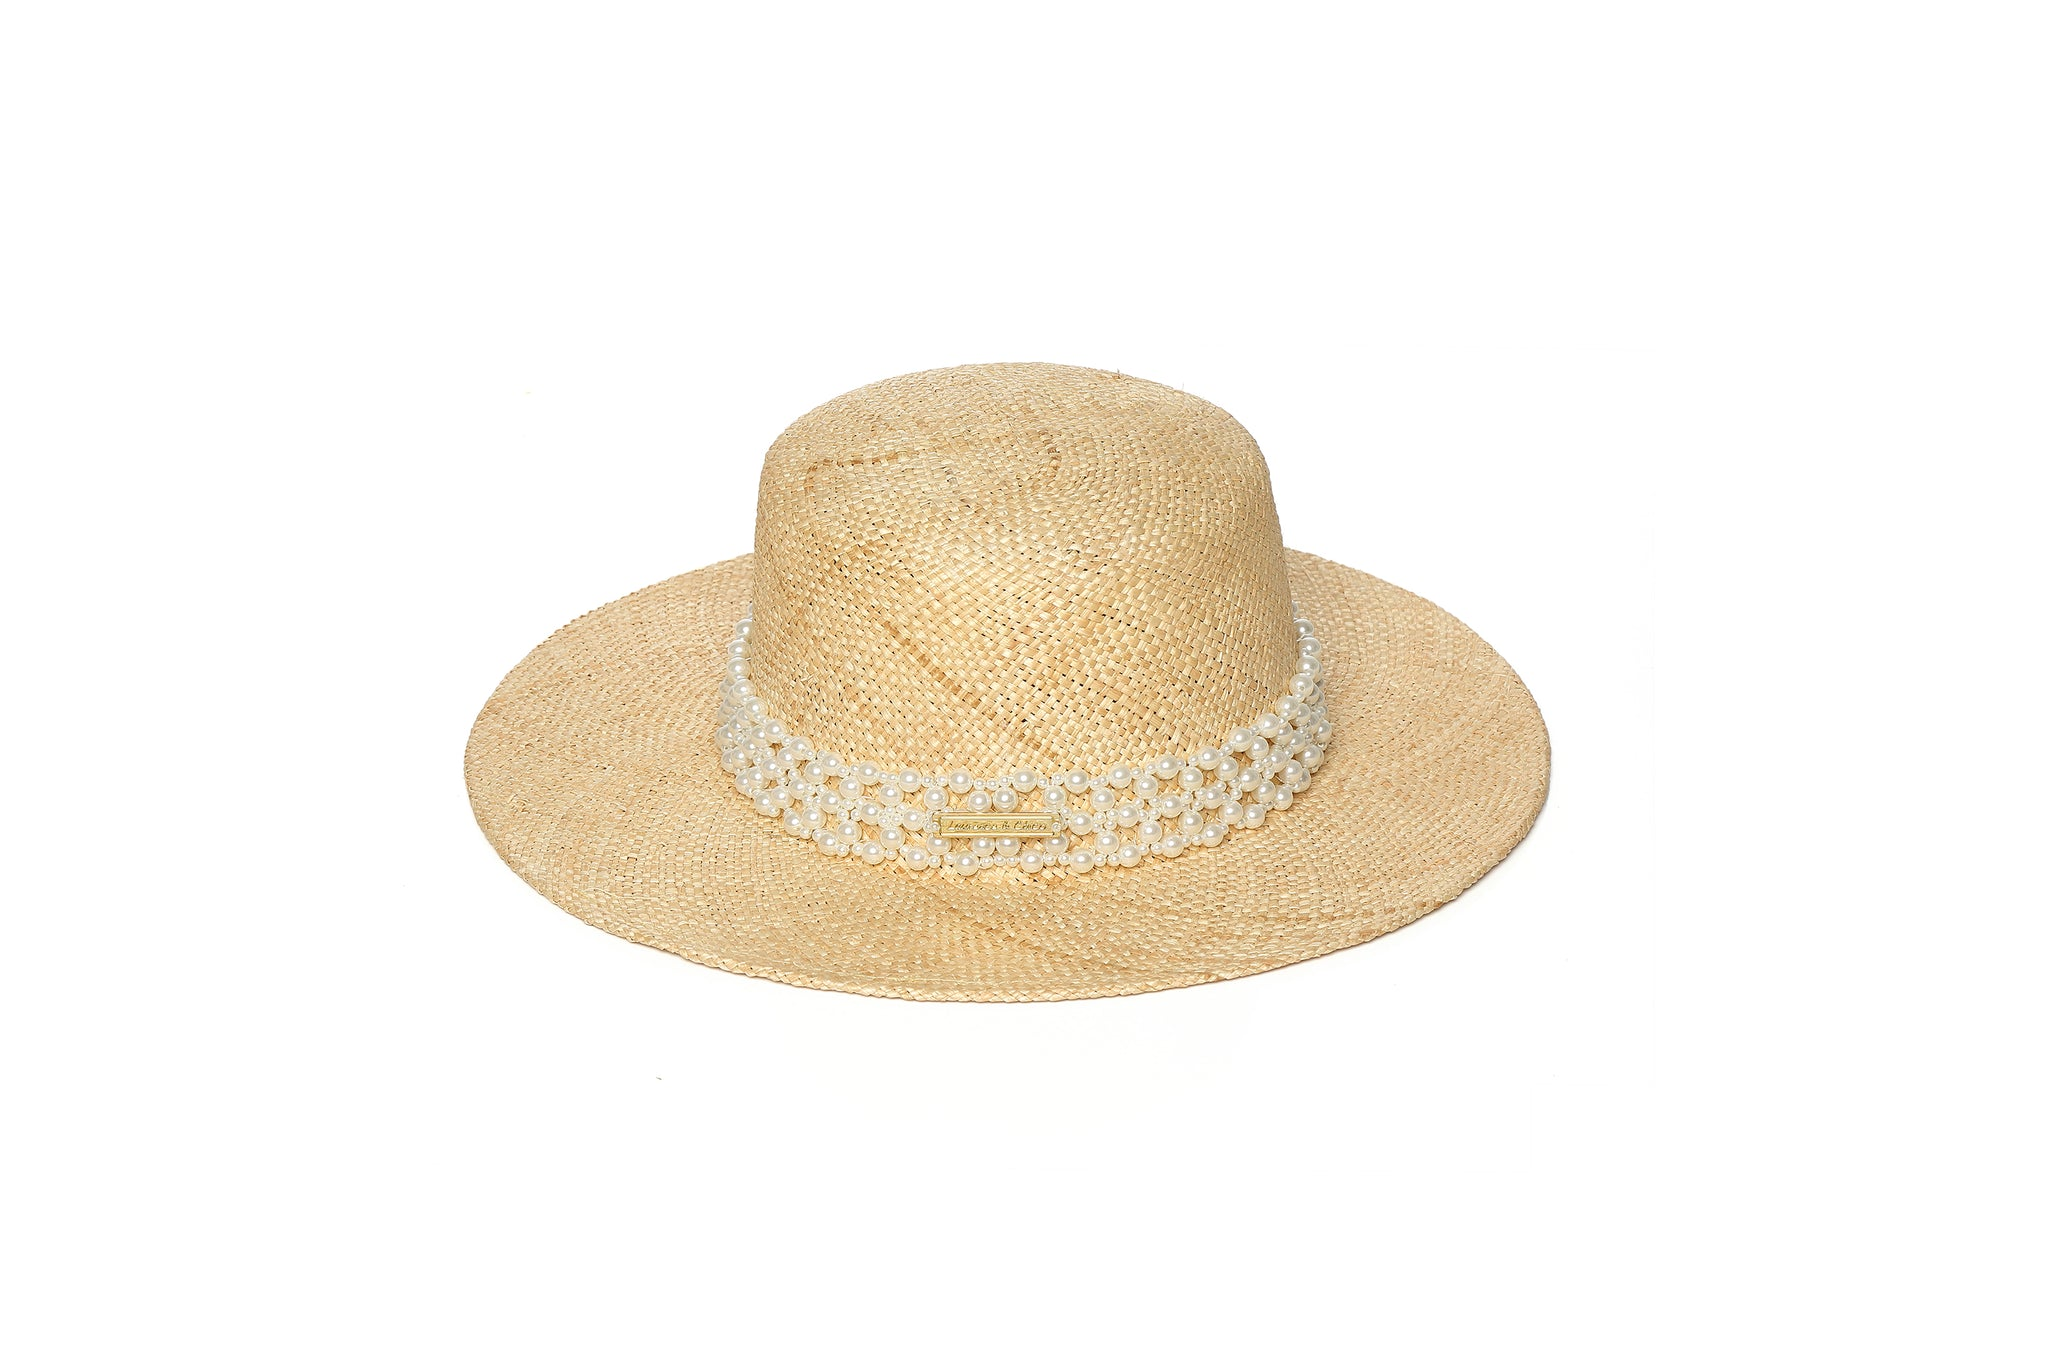 Straw Hat with Pearl Embellishments